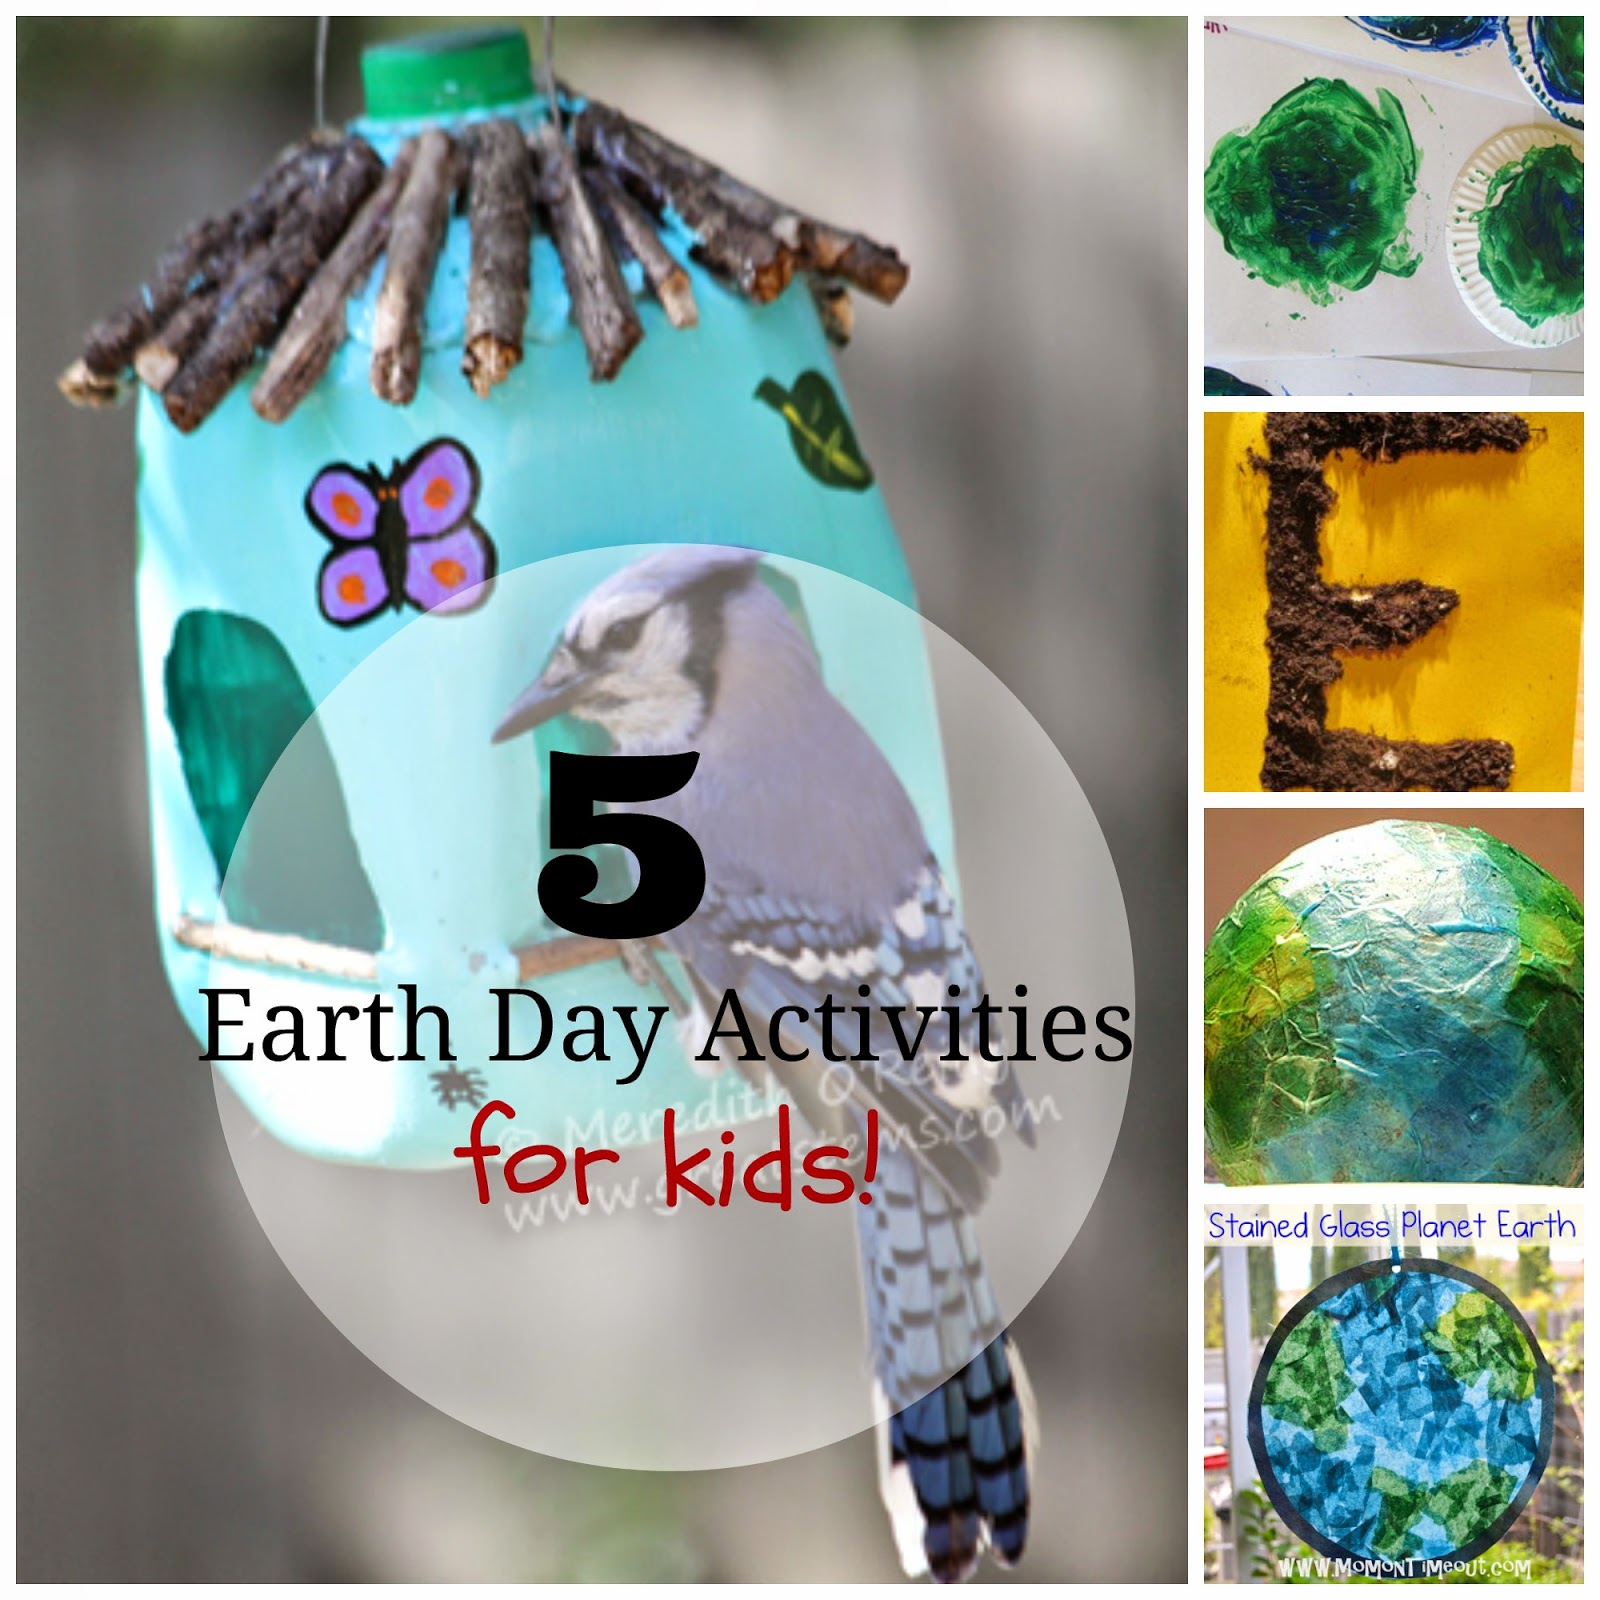 5 Earth Day activities for kids!